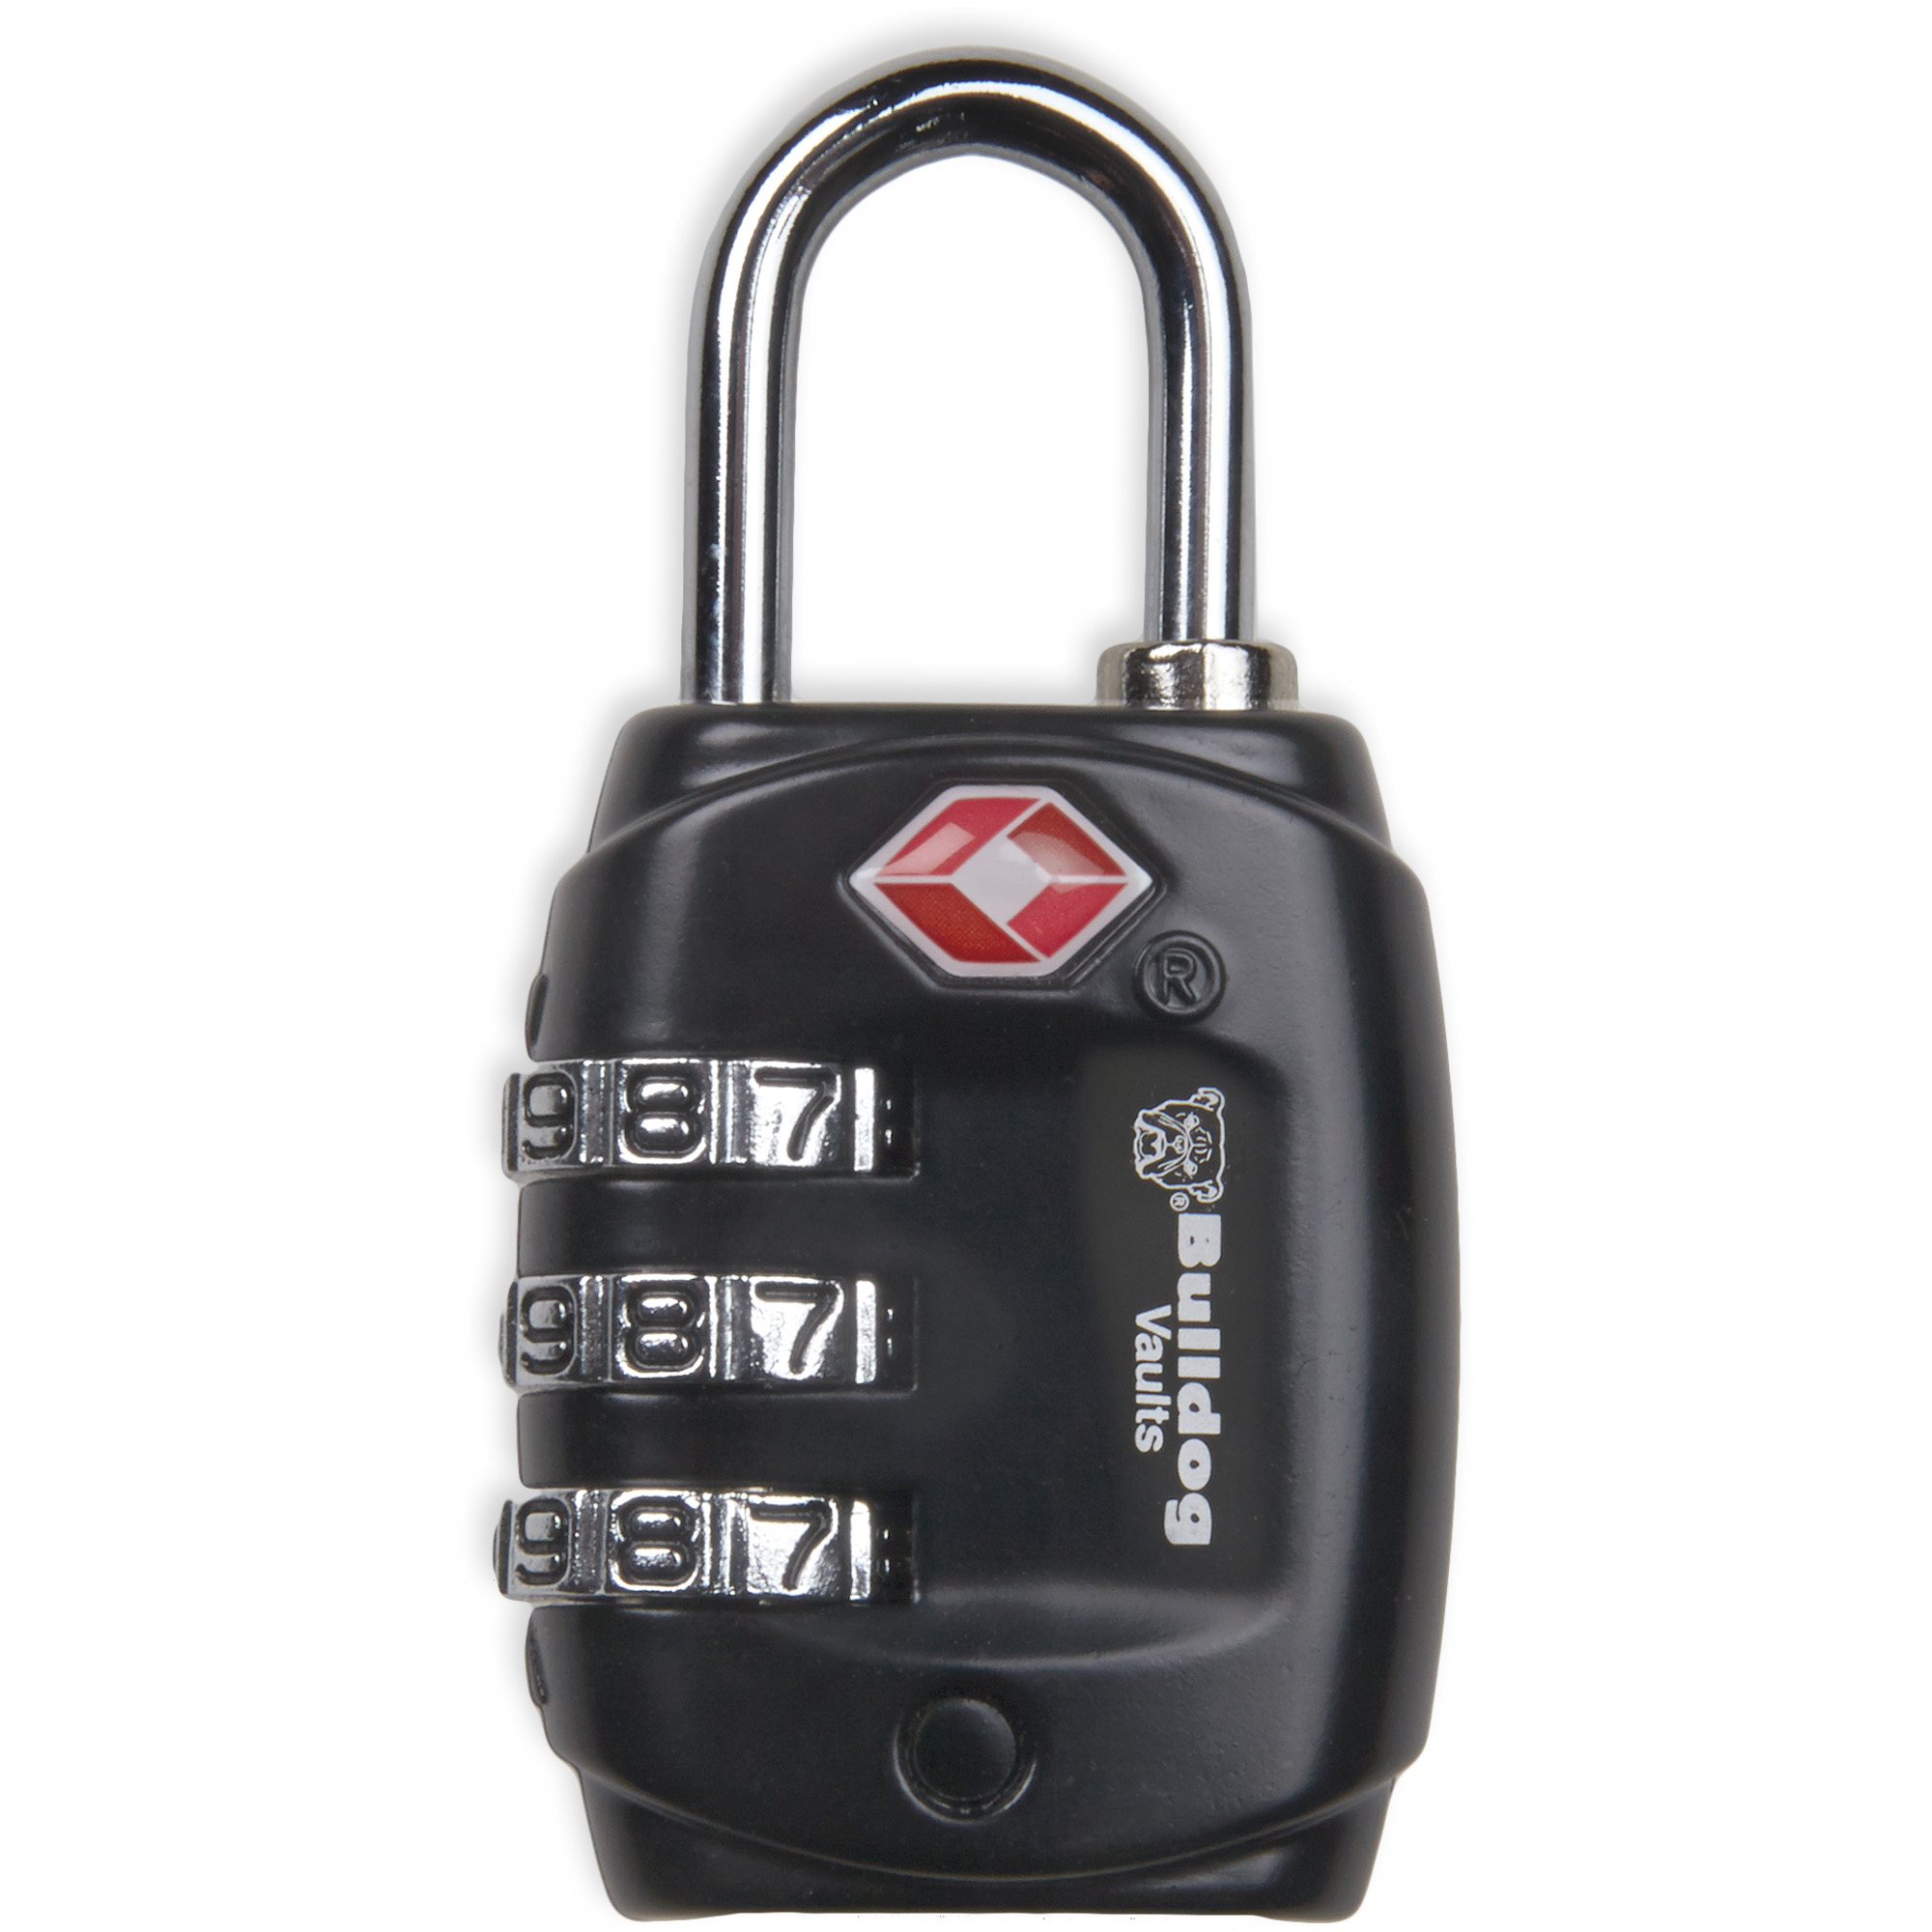 Bulldog Tsa Lock W/steel Shackle